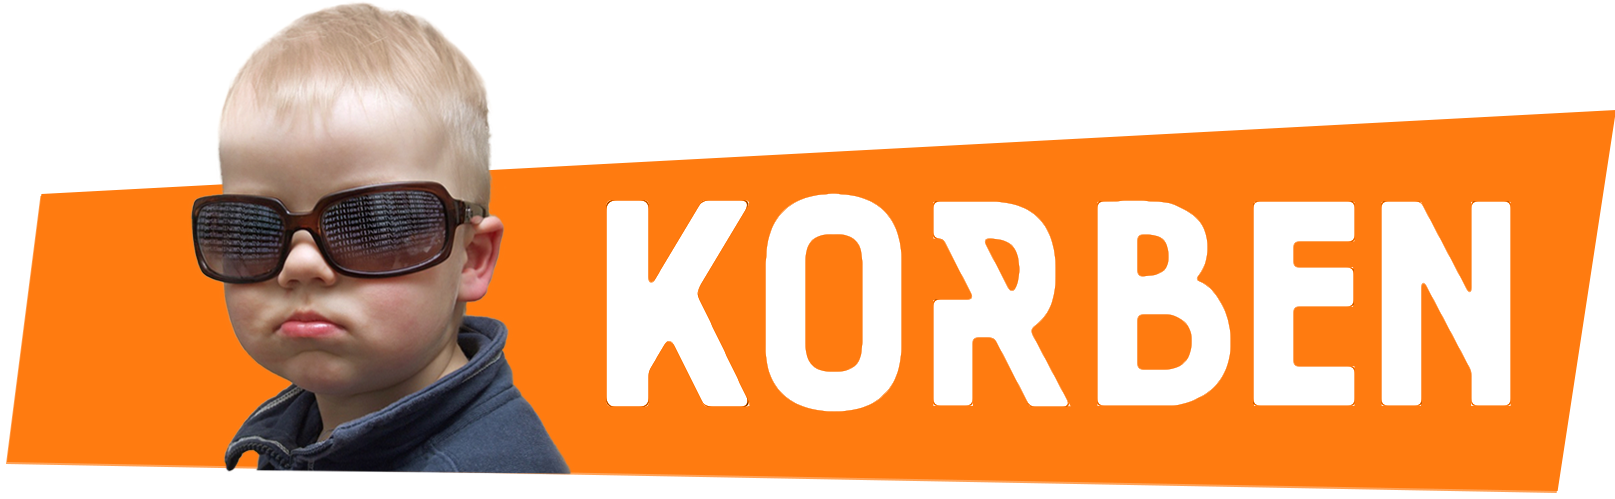 La boutique de KORBEN